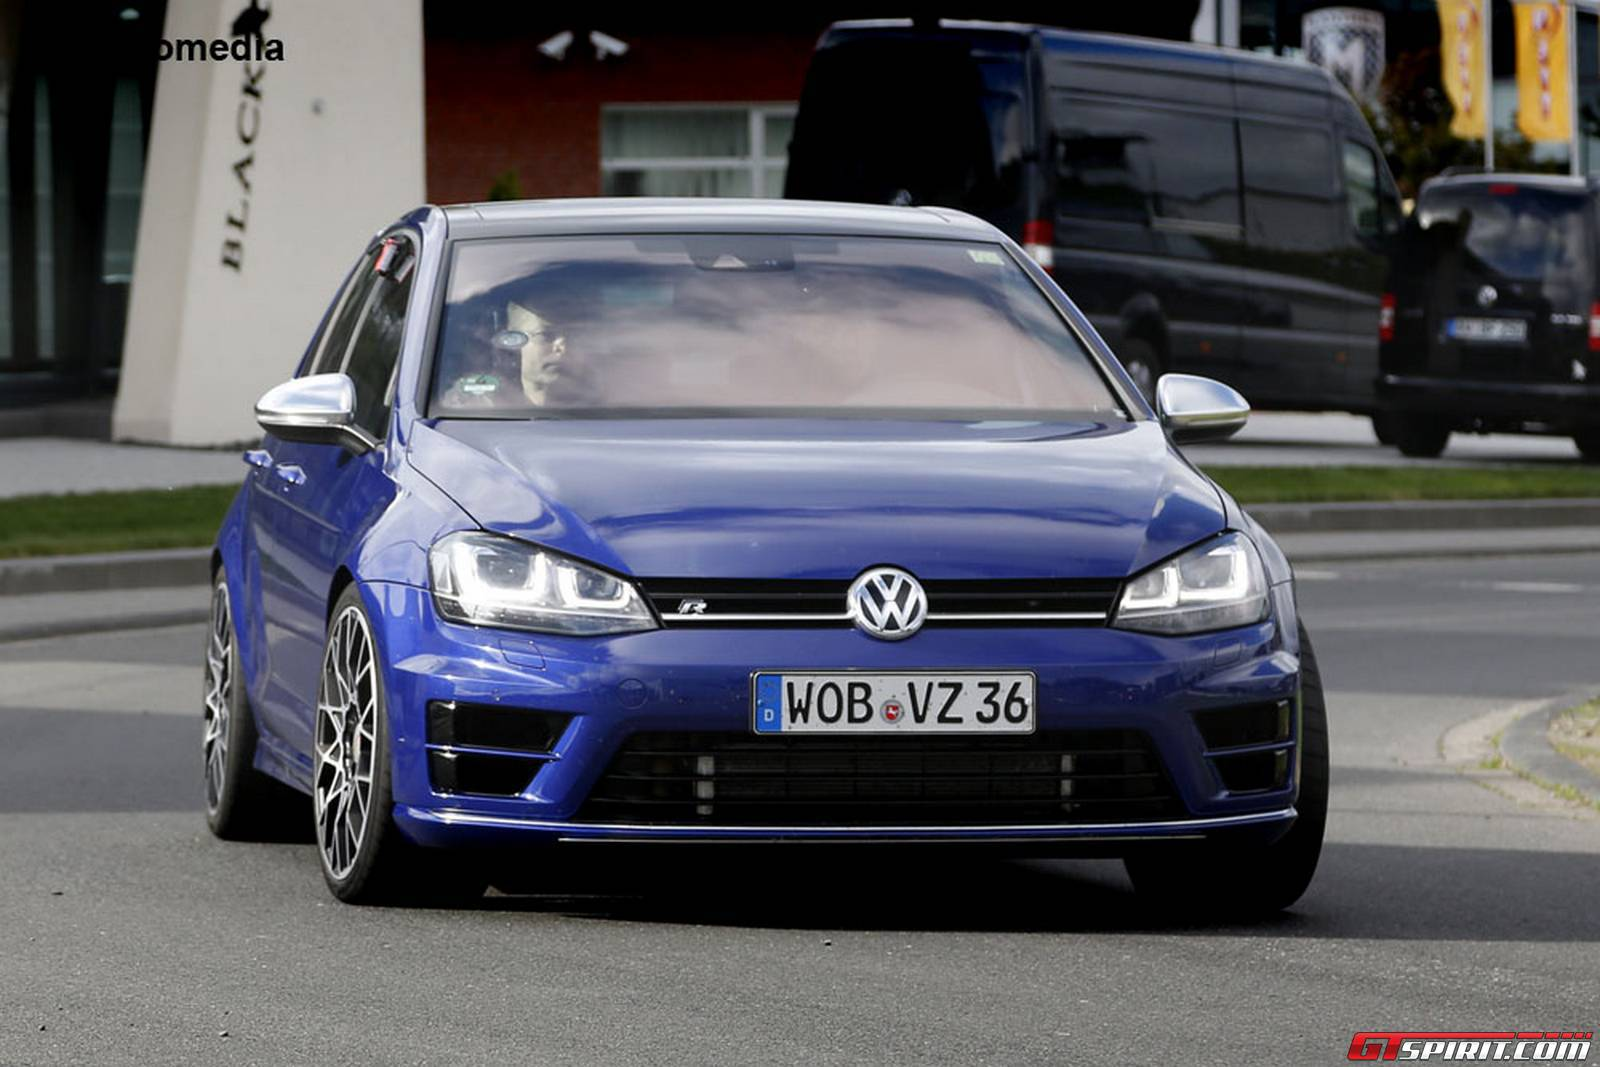 volkswagen golf r400 spied testing at the nurburgring gtspirit. Black Bedroom Furniture Sets. Home Design Ideas